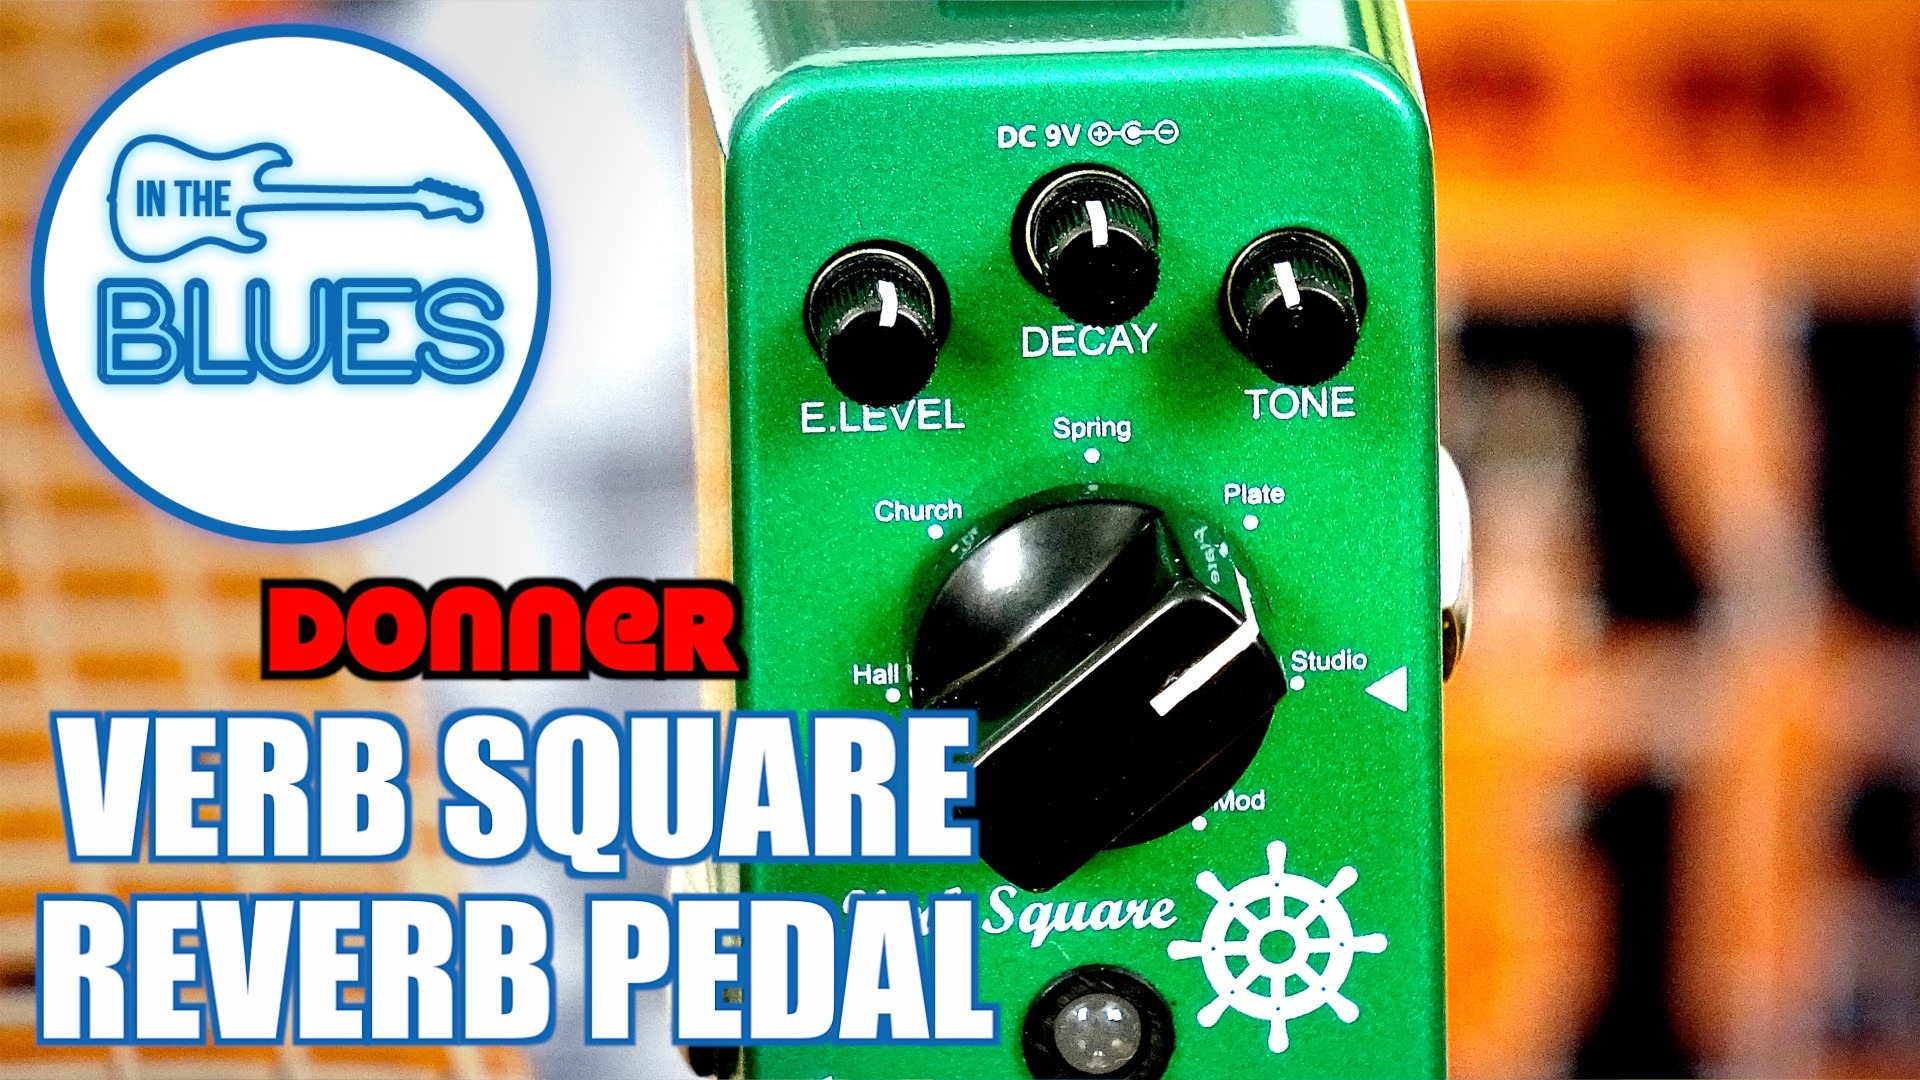 Donner Verb Square Reverb Pedal Review